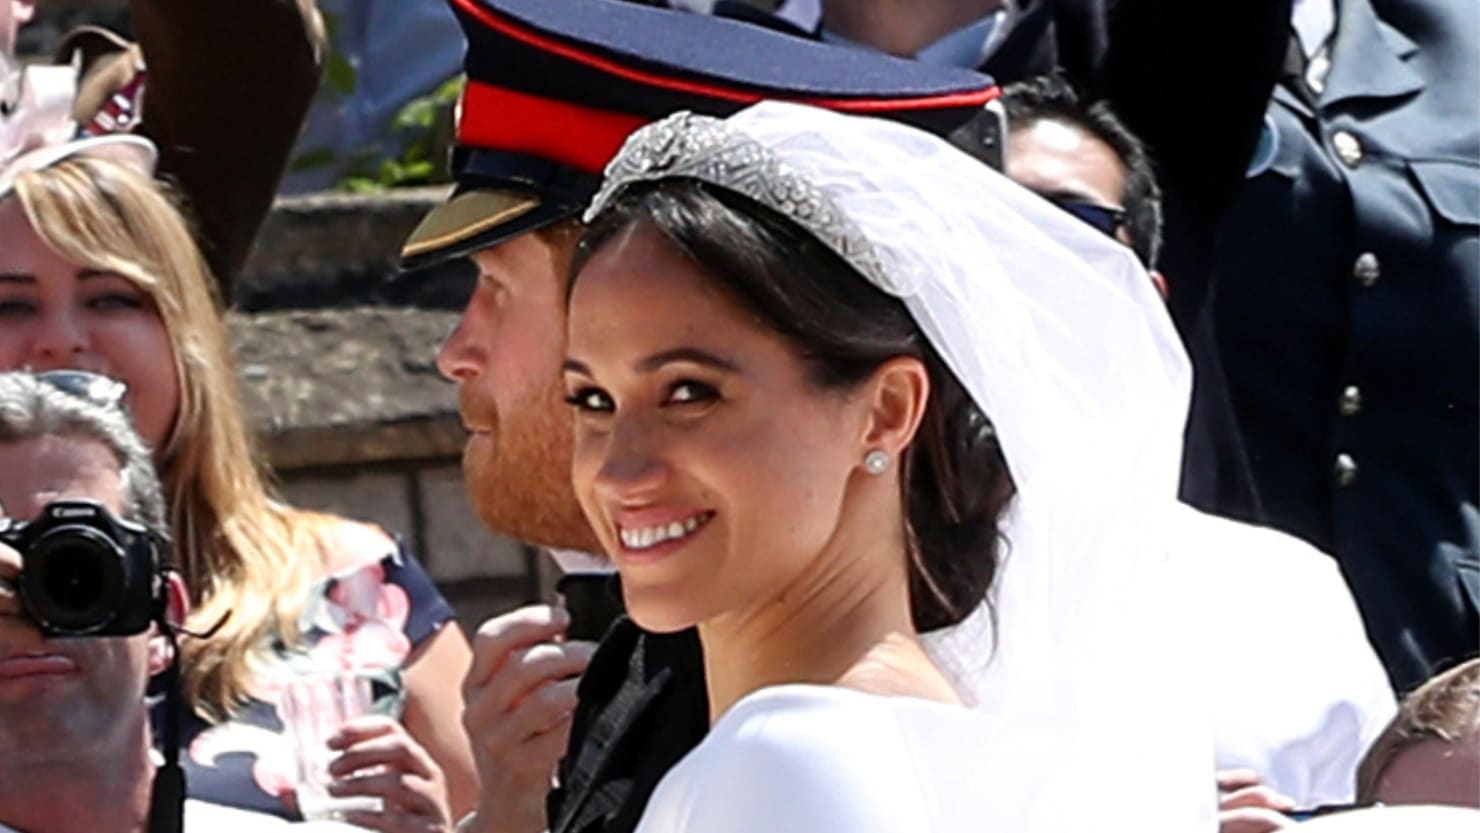 Meghan Markle in New York City to Have Baby Shower